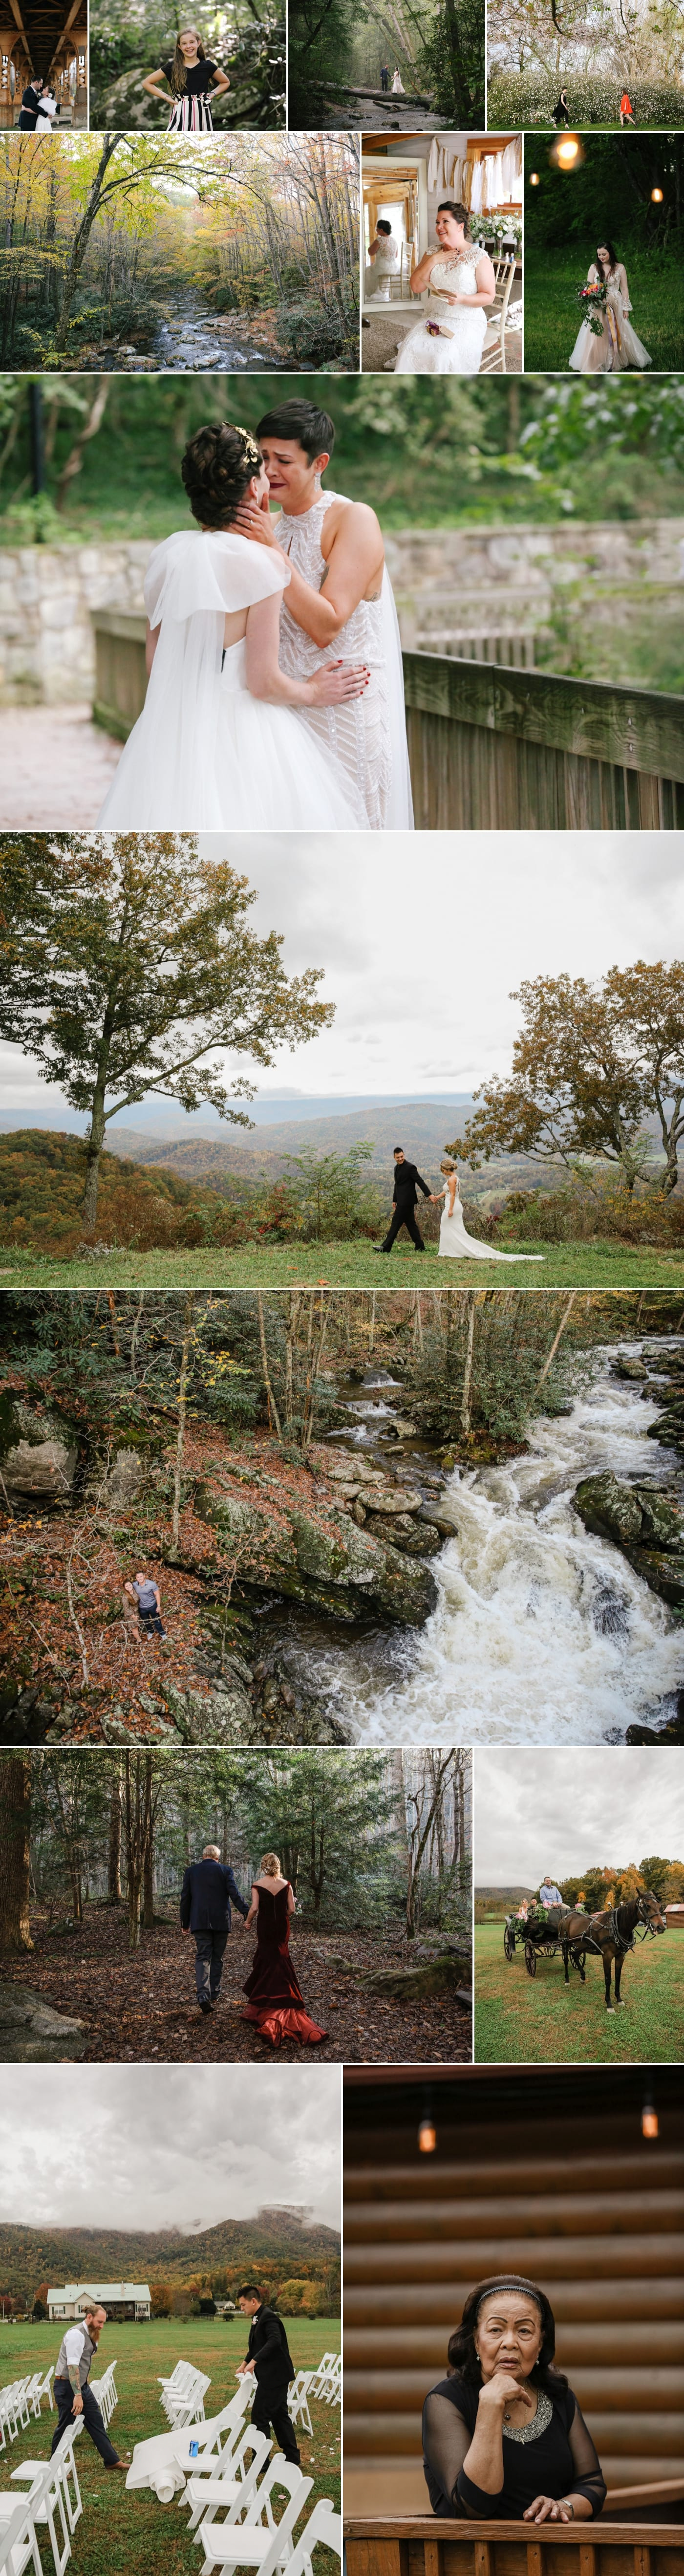 Weddings in the mountains